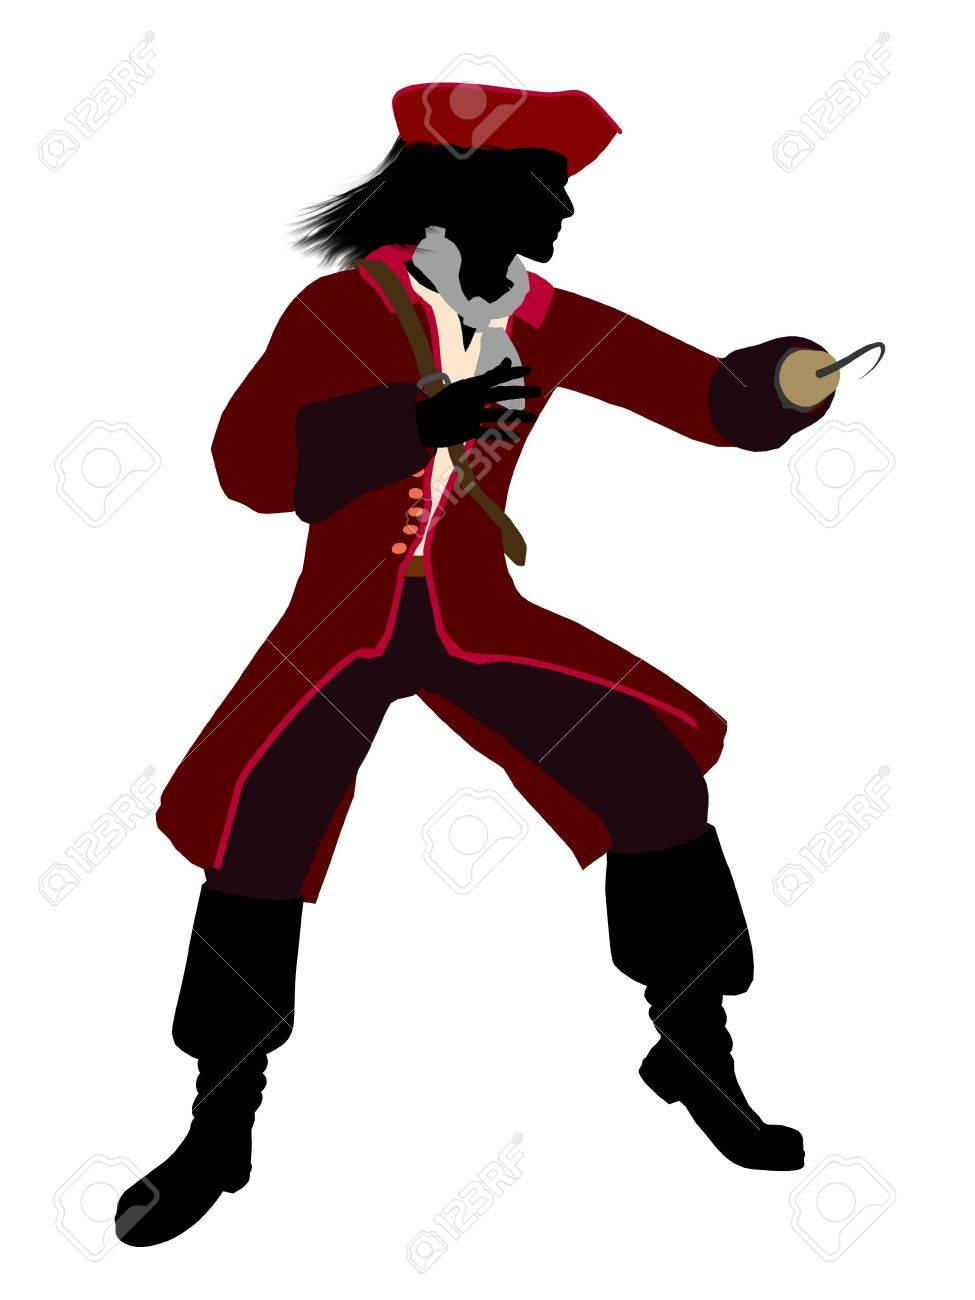 Captain hook illustration silhouette on a white background Stock Illustration - 6587139